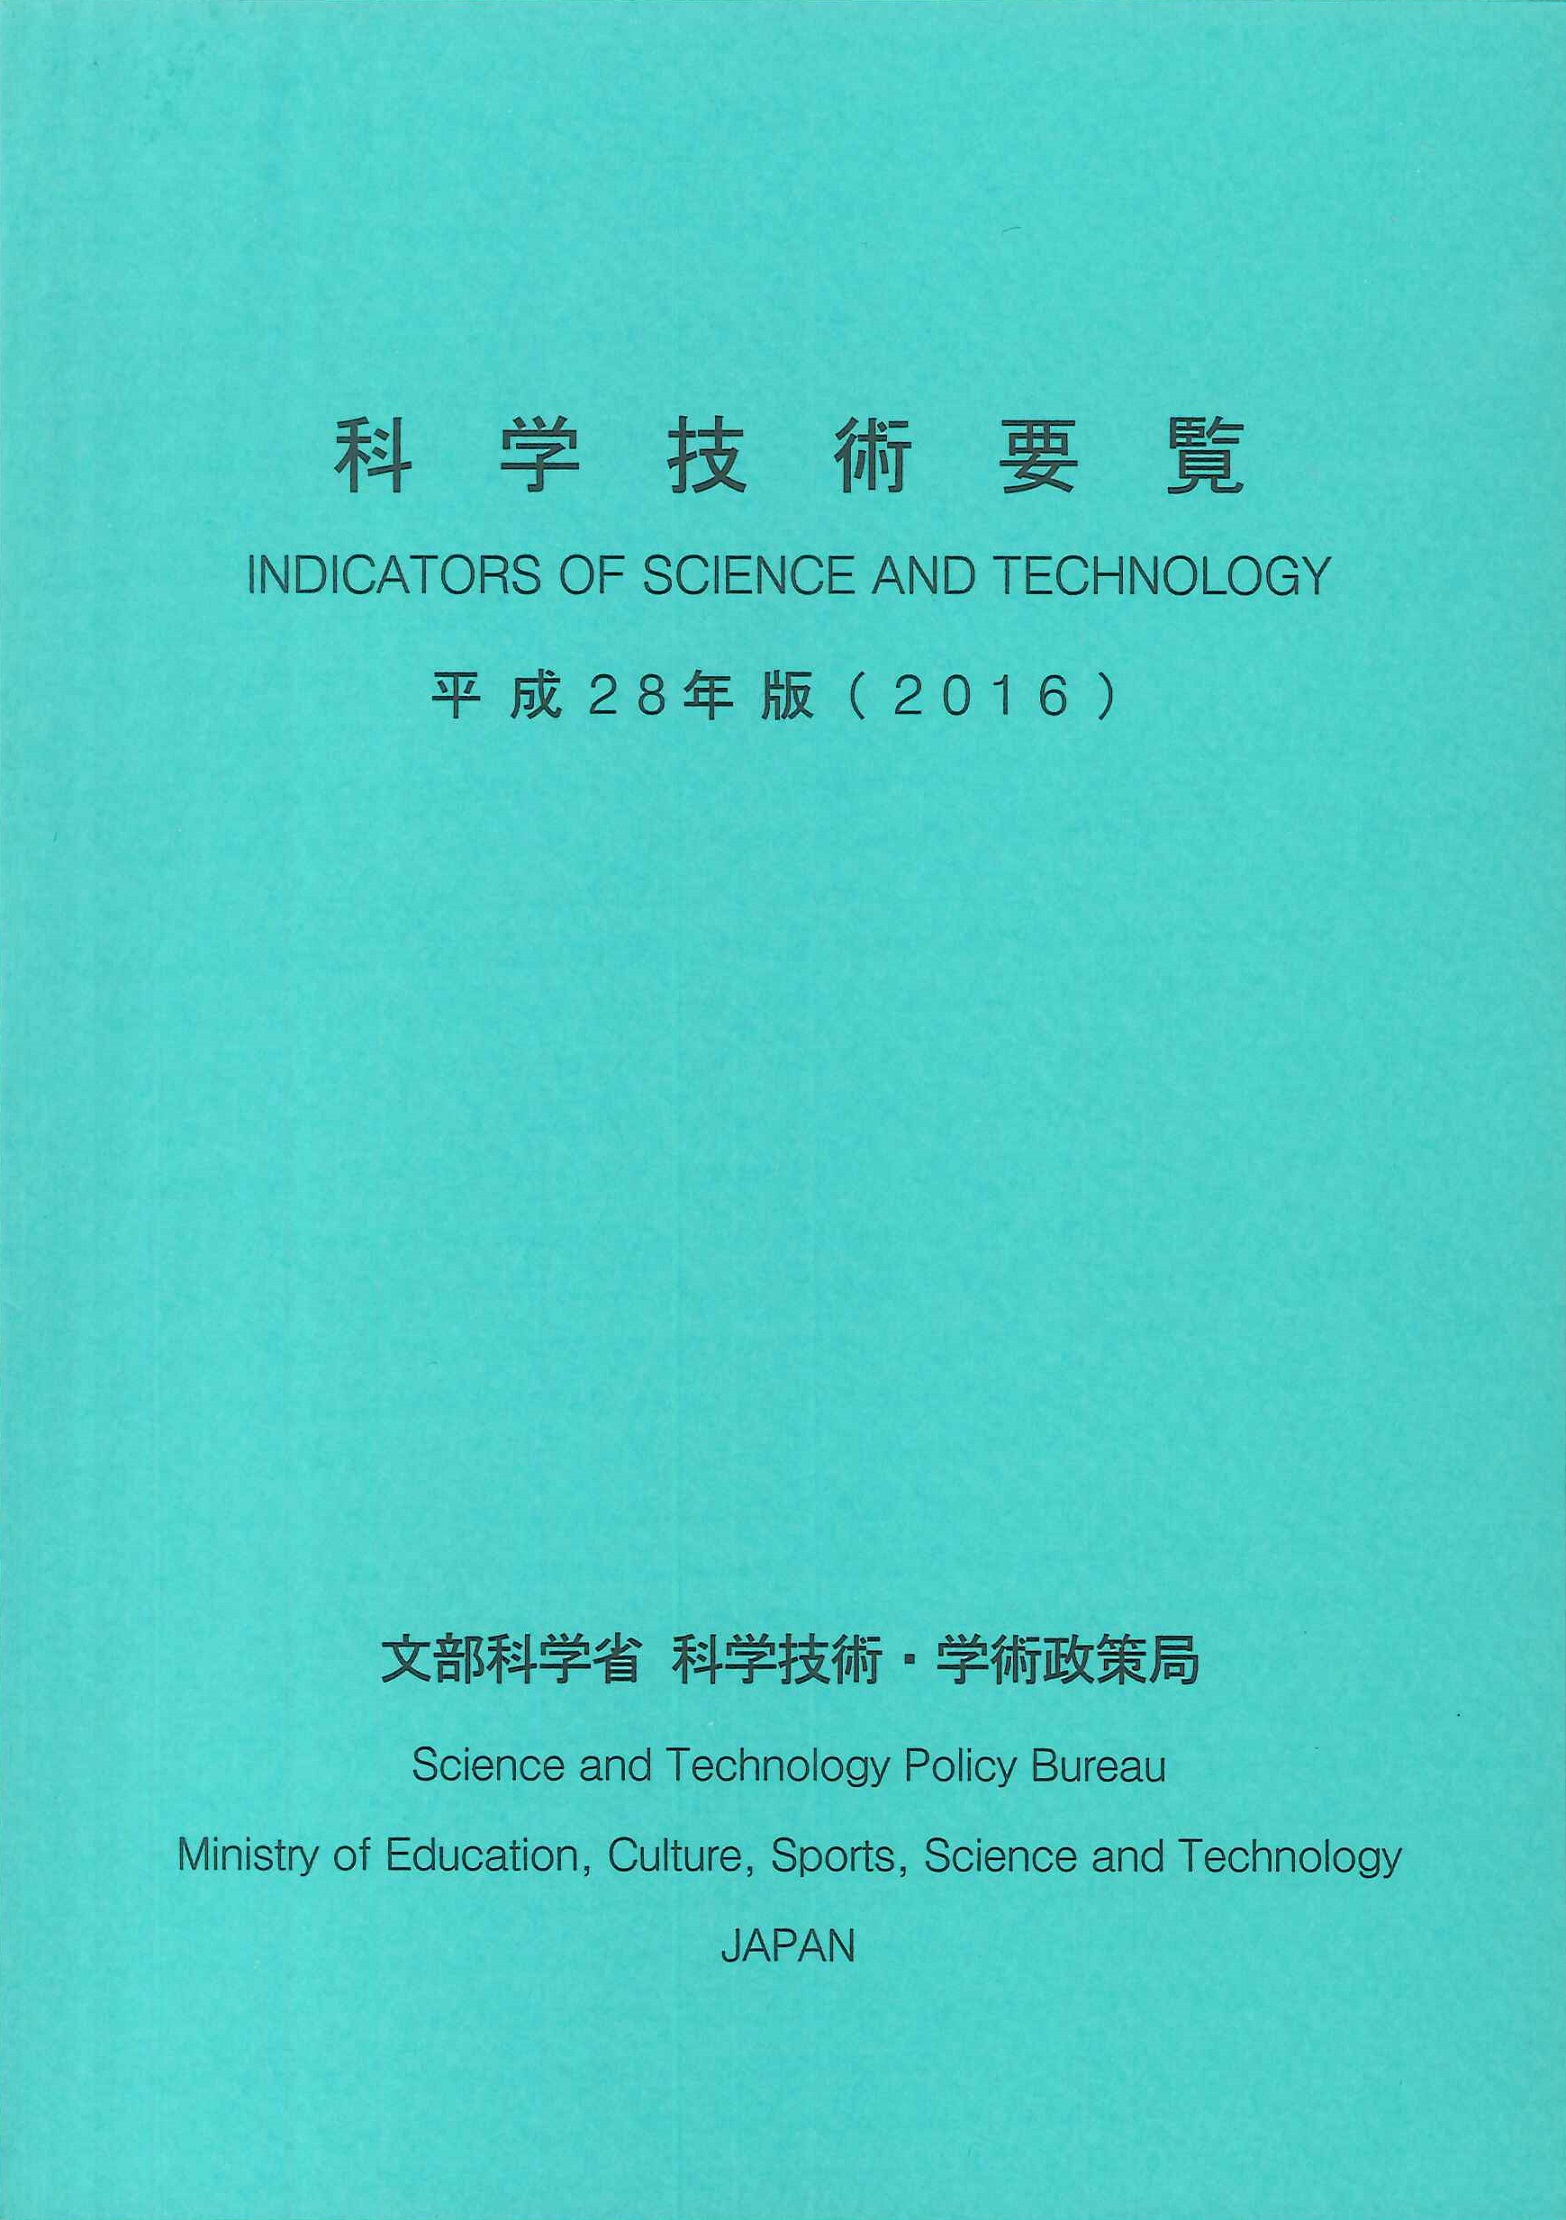 科学技術要覧=Indicators of science and technology